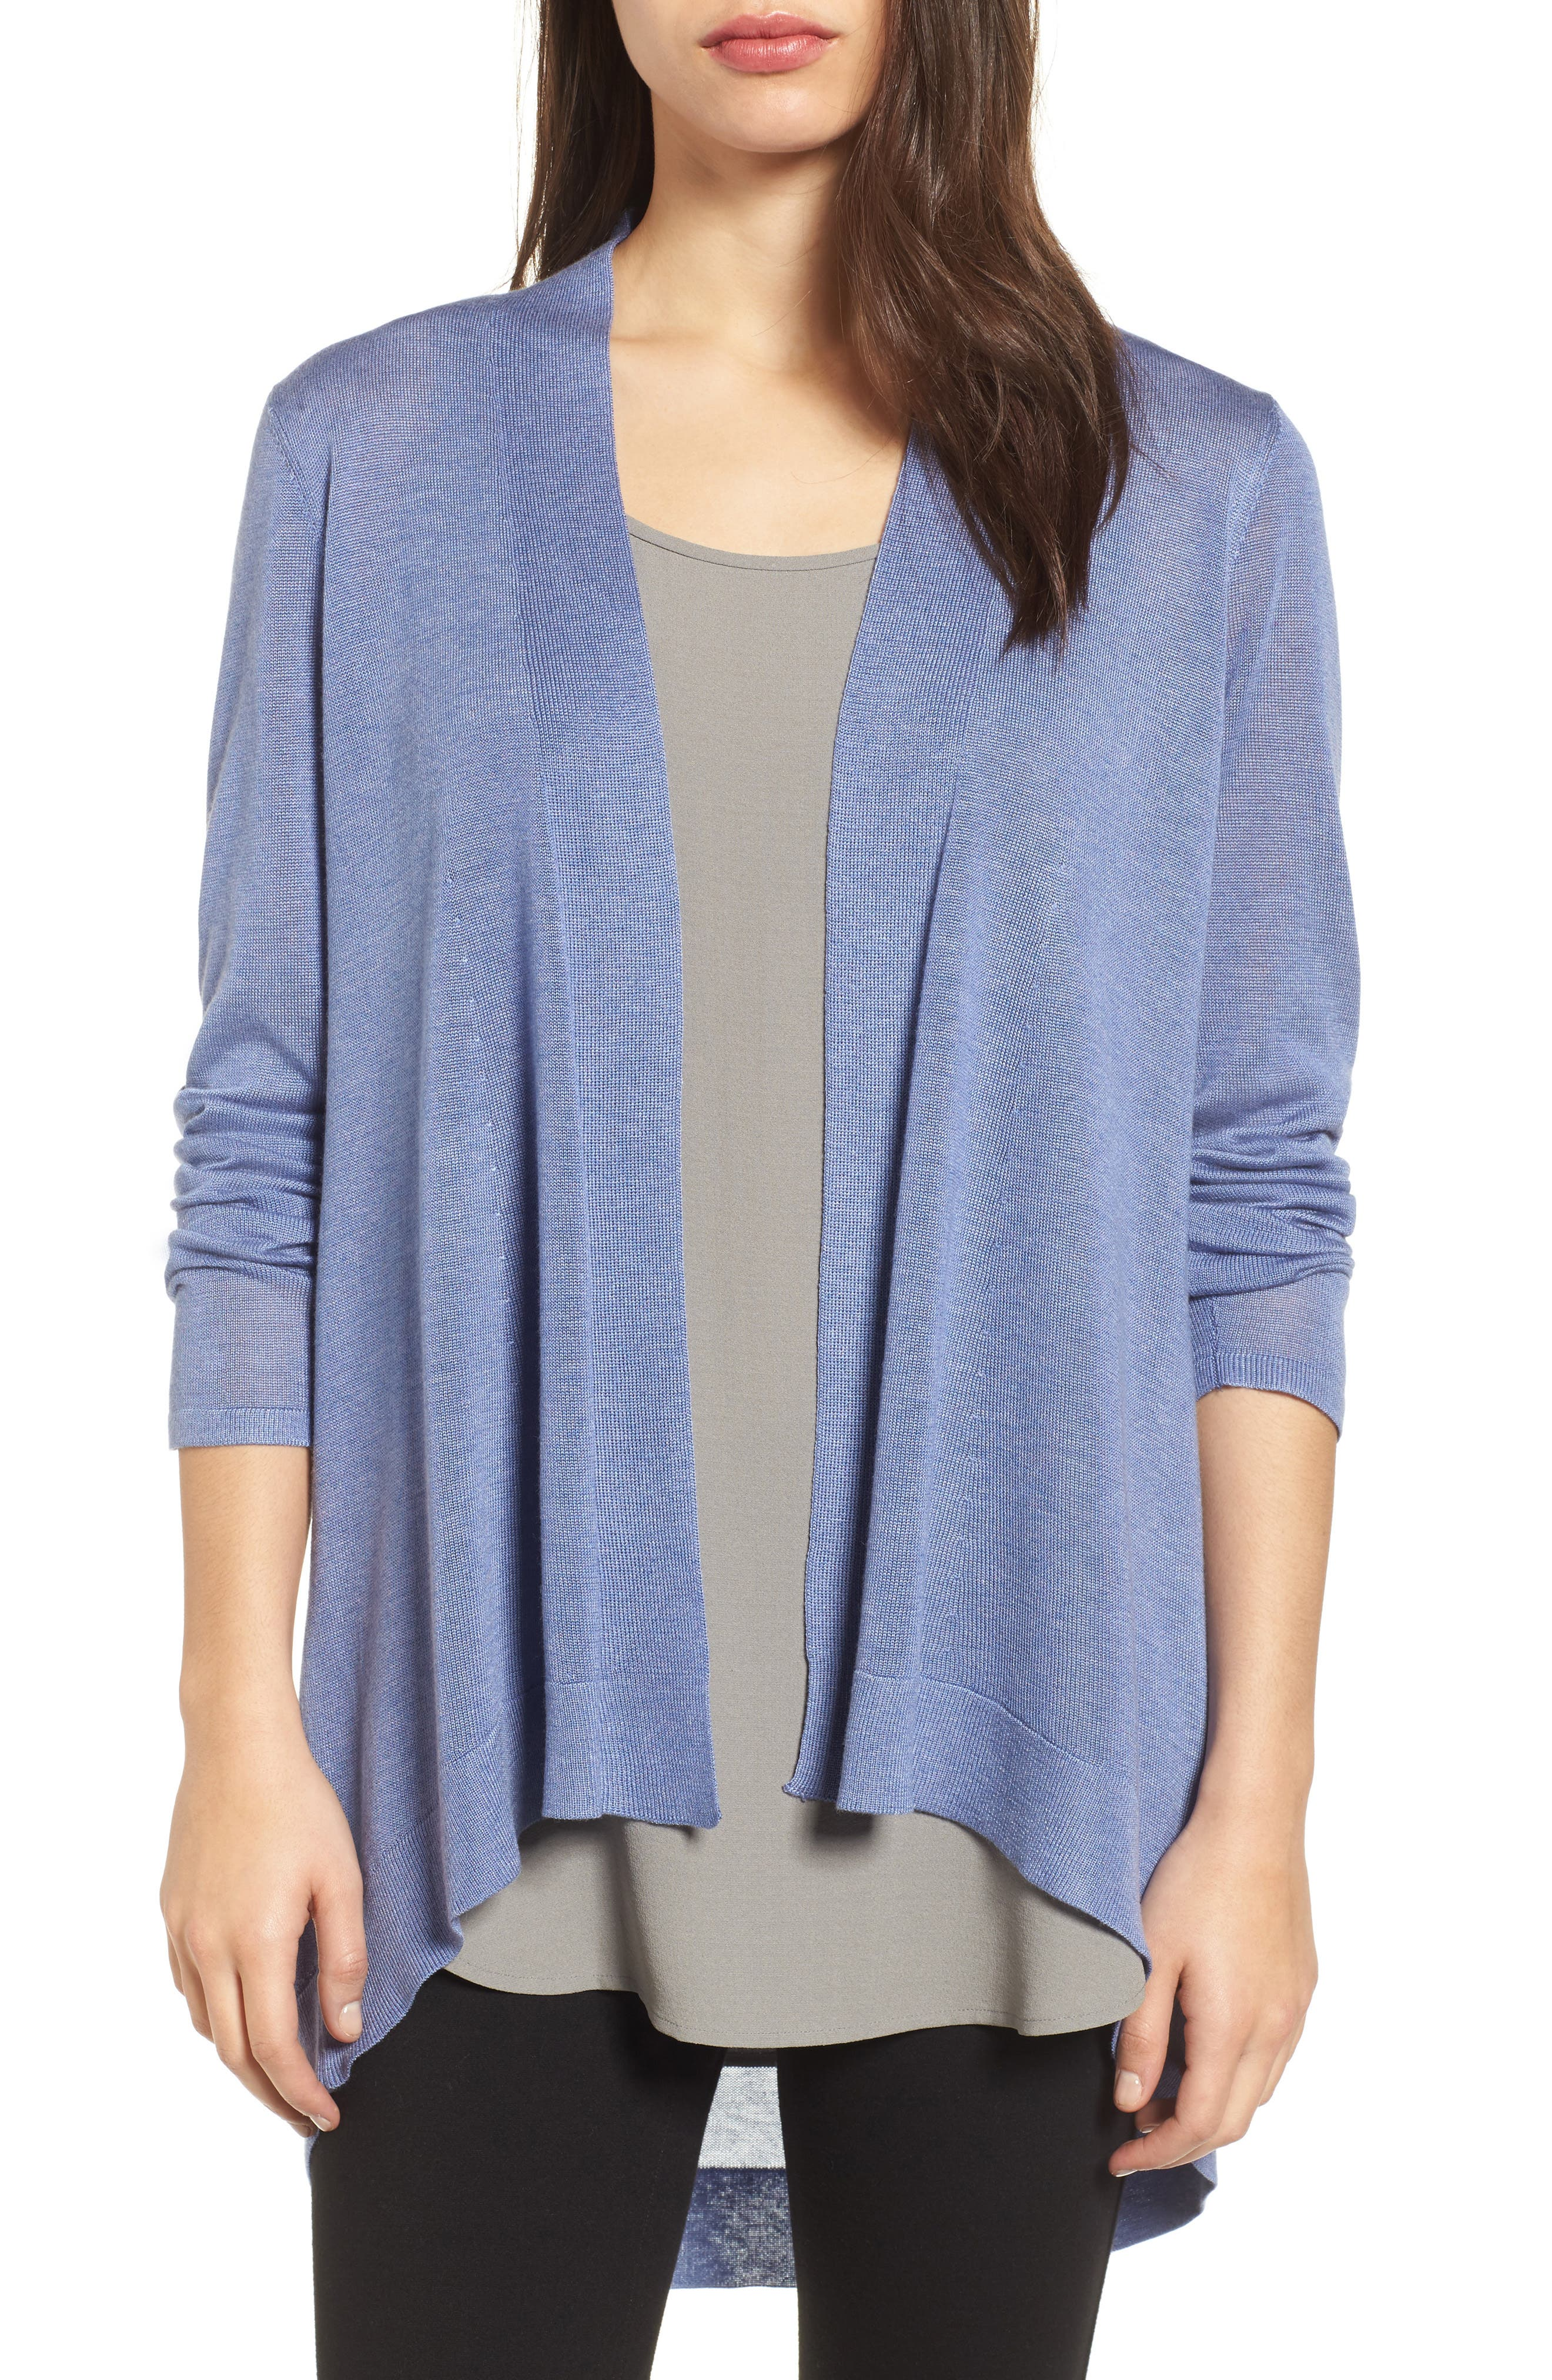 Tencel<sup>®</sup> Lyocell & Merino Wool Shaped Cardigan,                         Main,                         color, Periwinkle